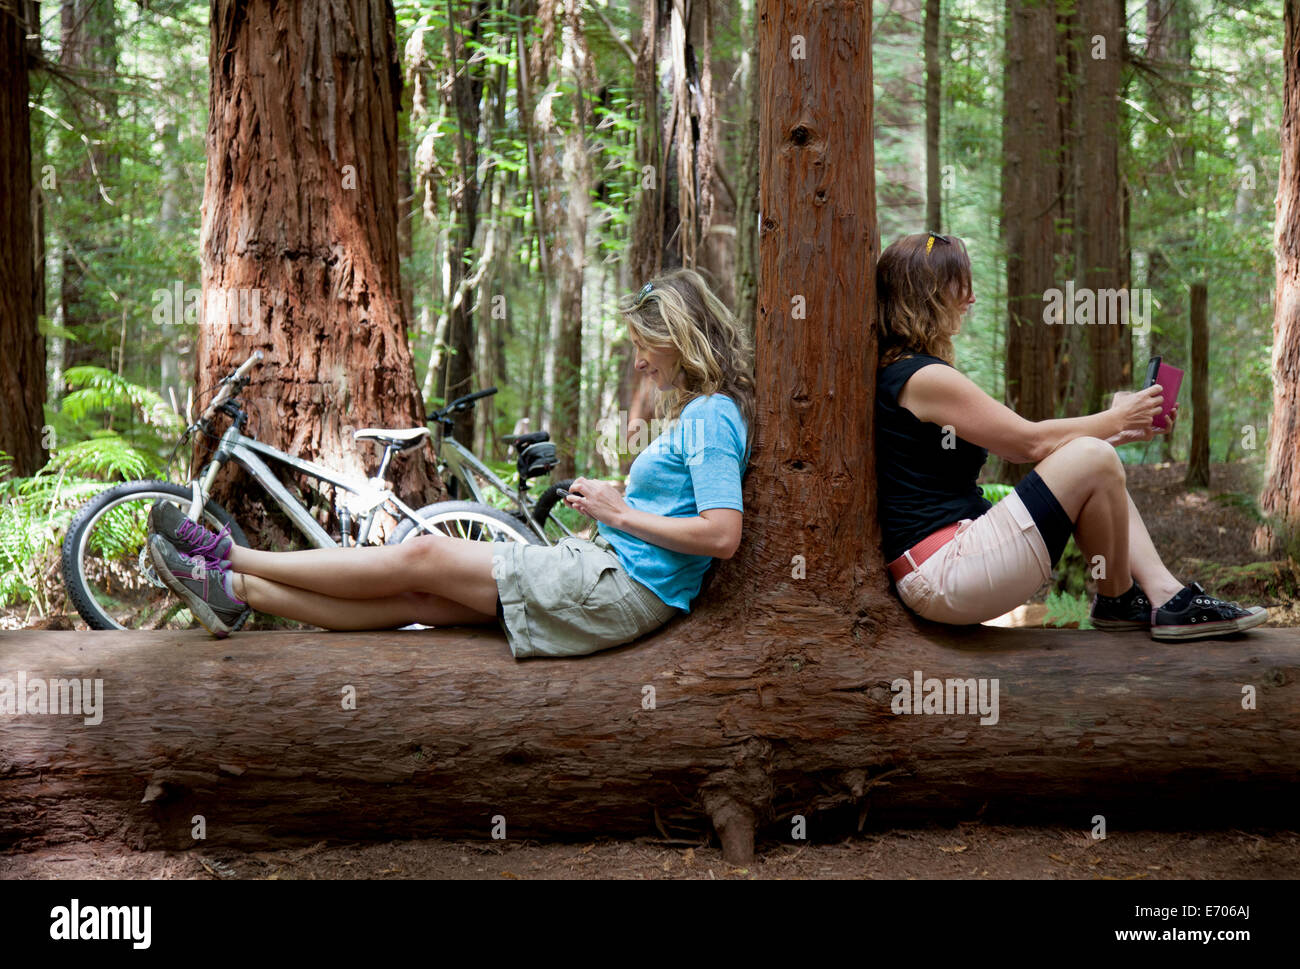 Two mid adult women looking down at smartphone and digital tablet in forest - Stock Image